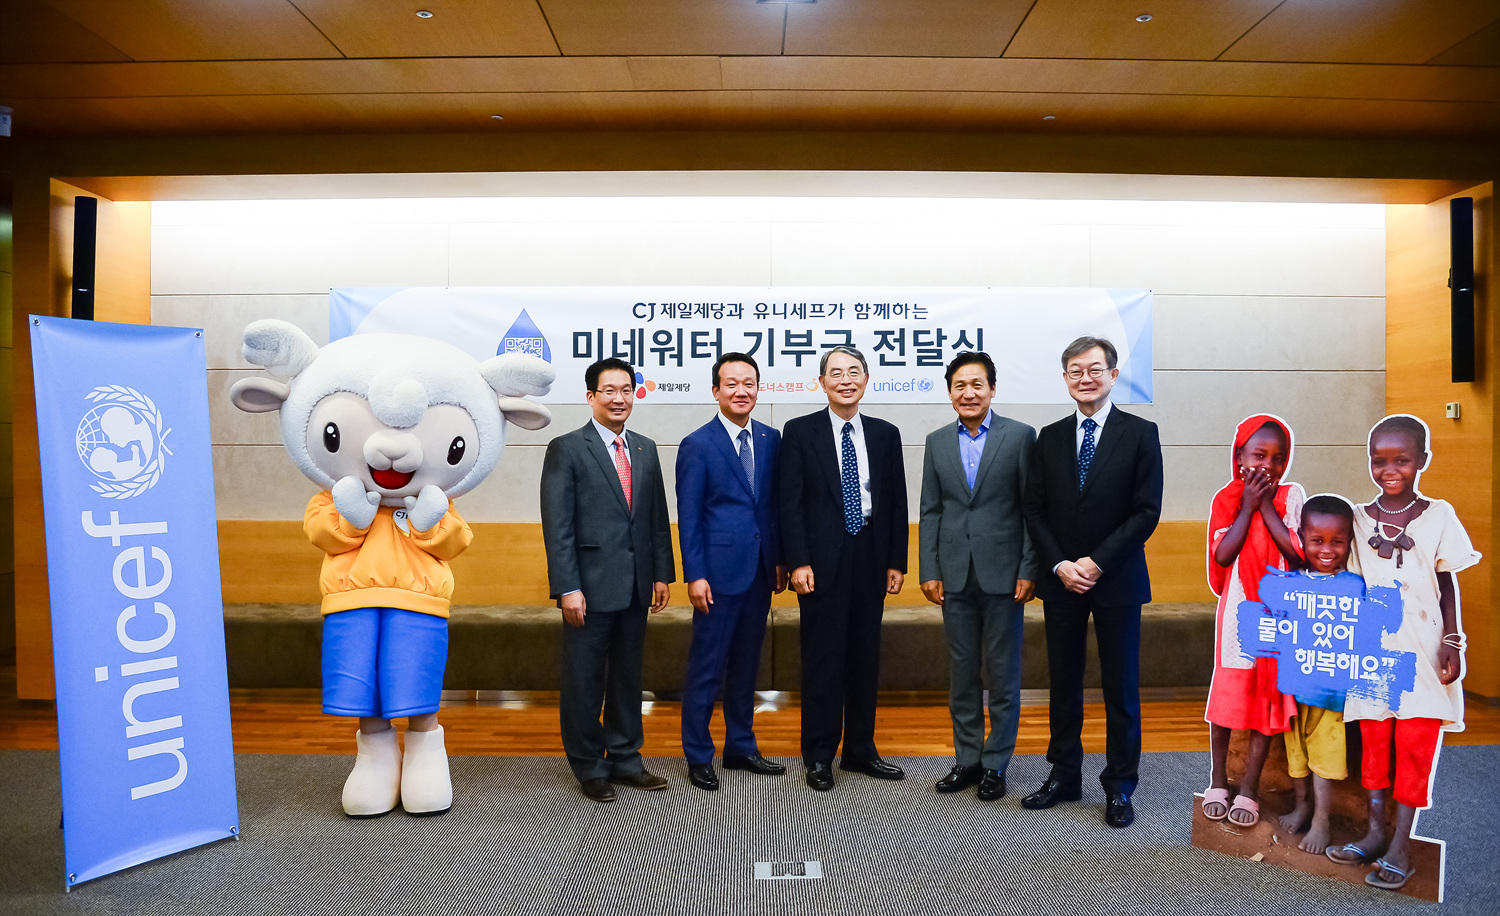 (From left) Kwon Jung-hyun, director at CJ Group Social Contribution, Yim Sang-yeop, assistant managing director at CJ Cheiljedang, Song Sang-hyun, chairman of UNICEF, Ahn Sung Ki, UNICEF Goodwill Ambassador and film star, and Seo Dae-won, secretary gener